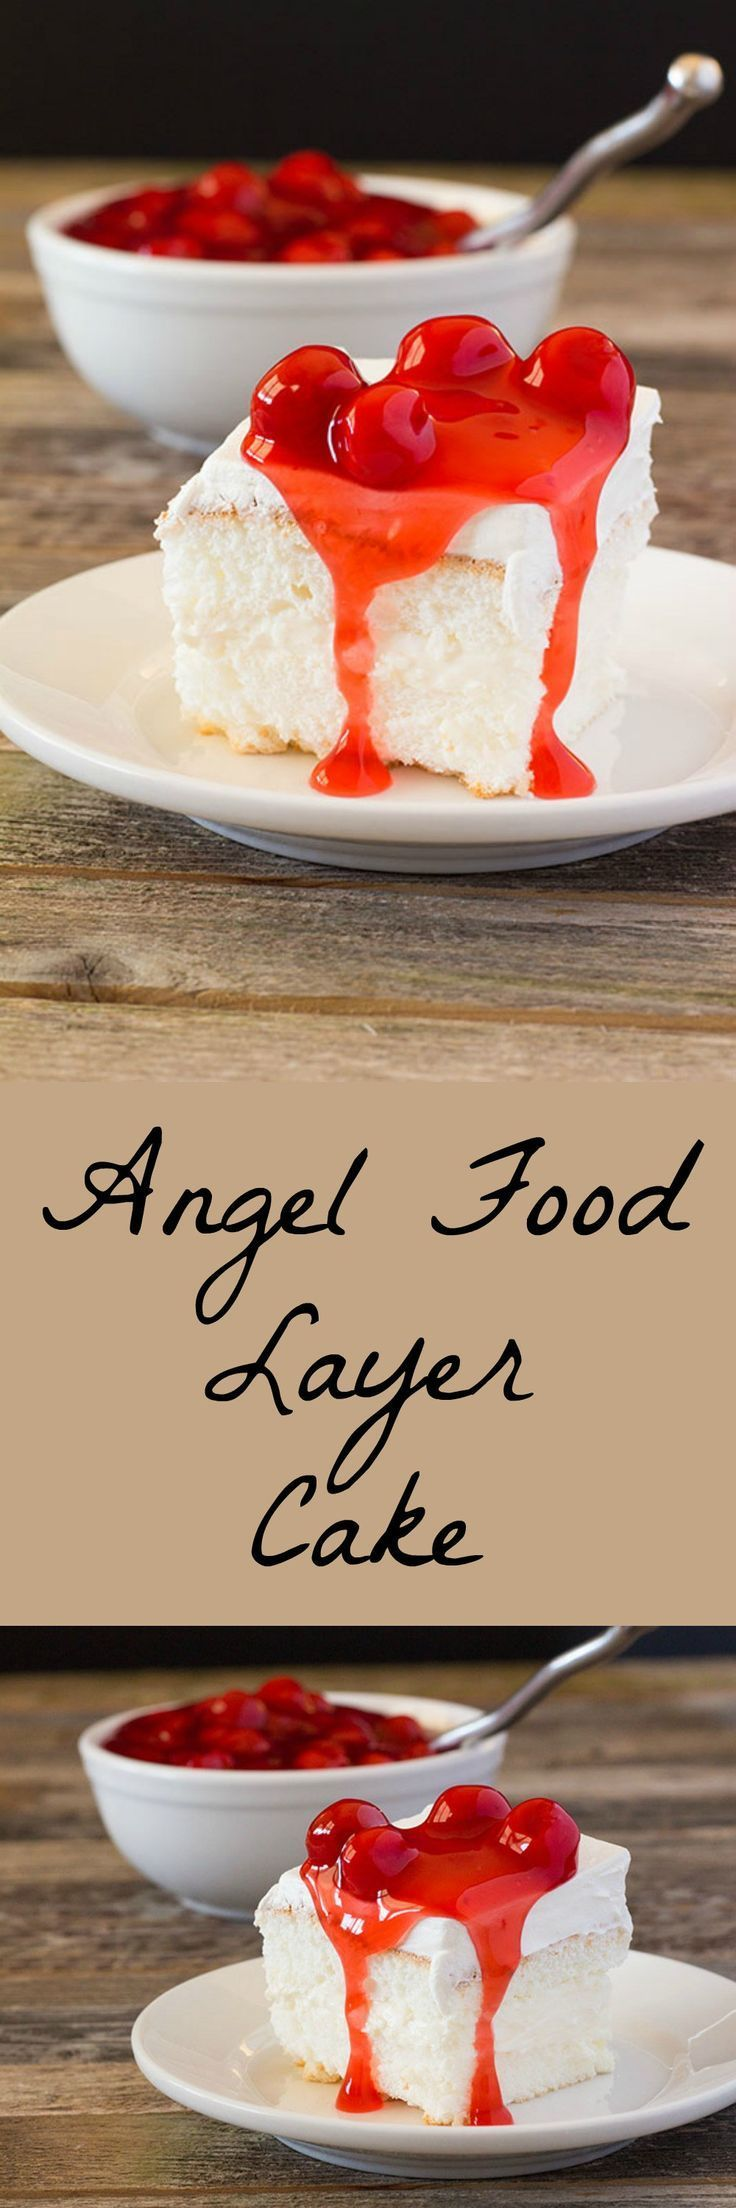 Layered angel food cake baked in a 9 x 13 pan and filled